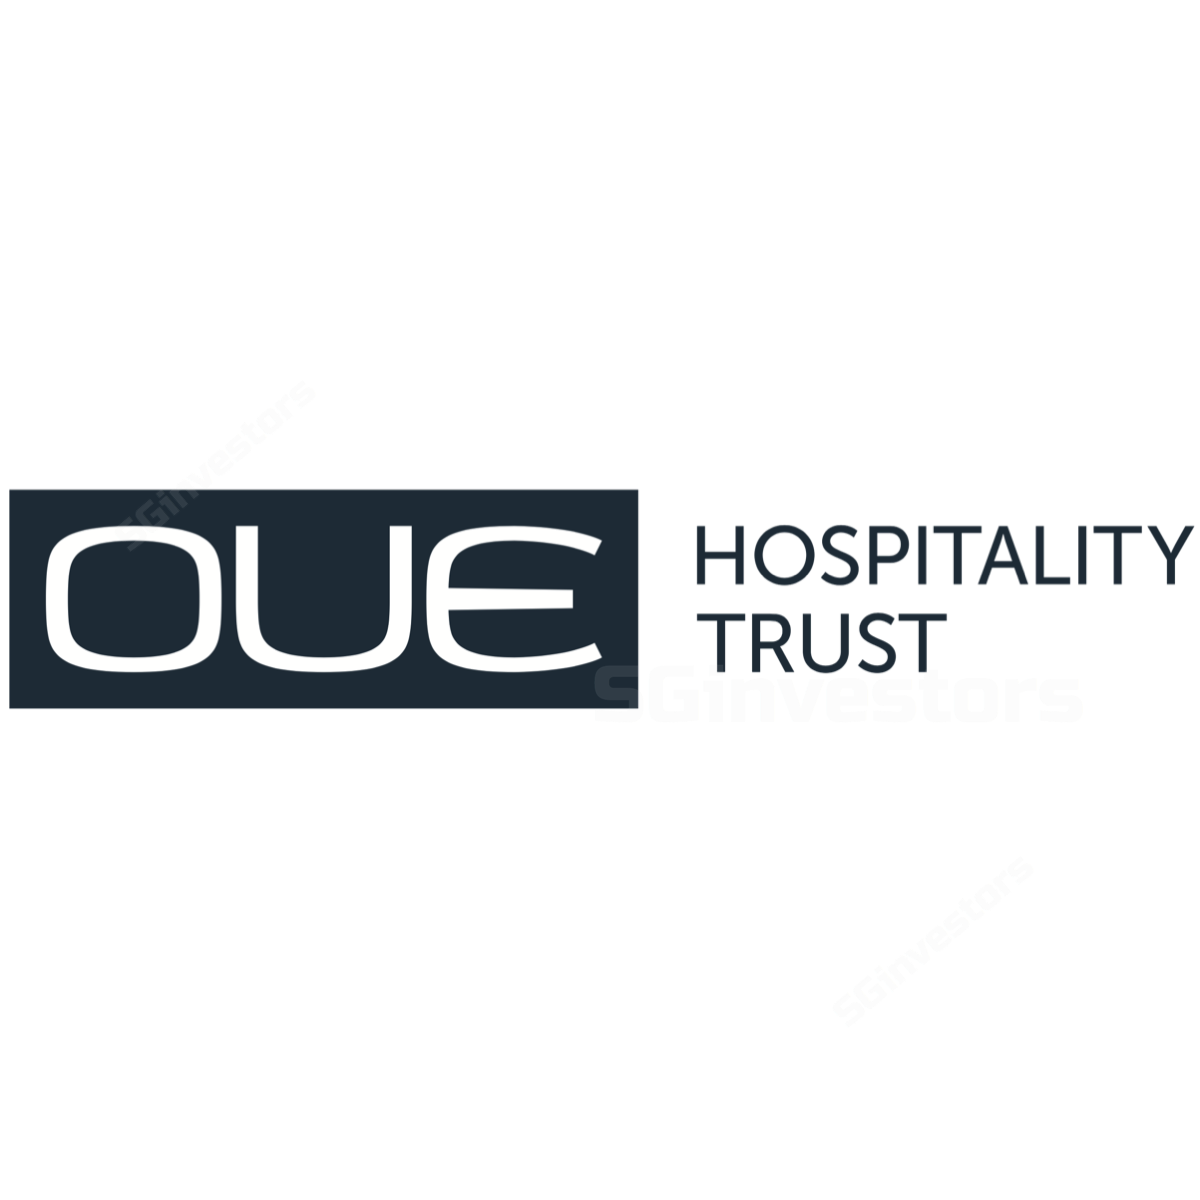 OUE Hospitality Trust - OCBC Investment 2017-08-02: Blockbuster DPU Growth Of 31.5%